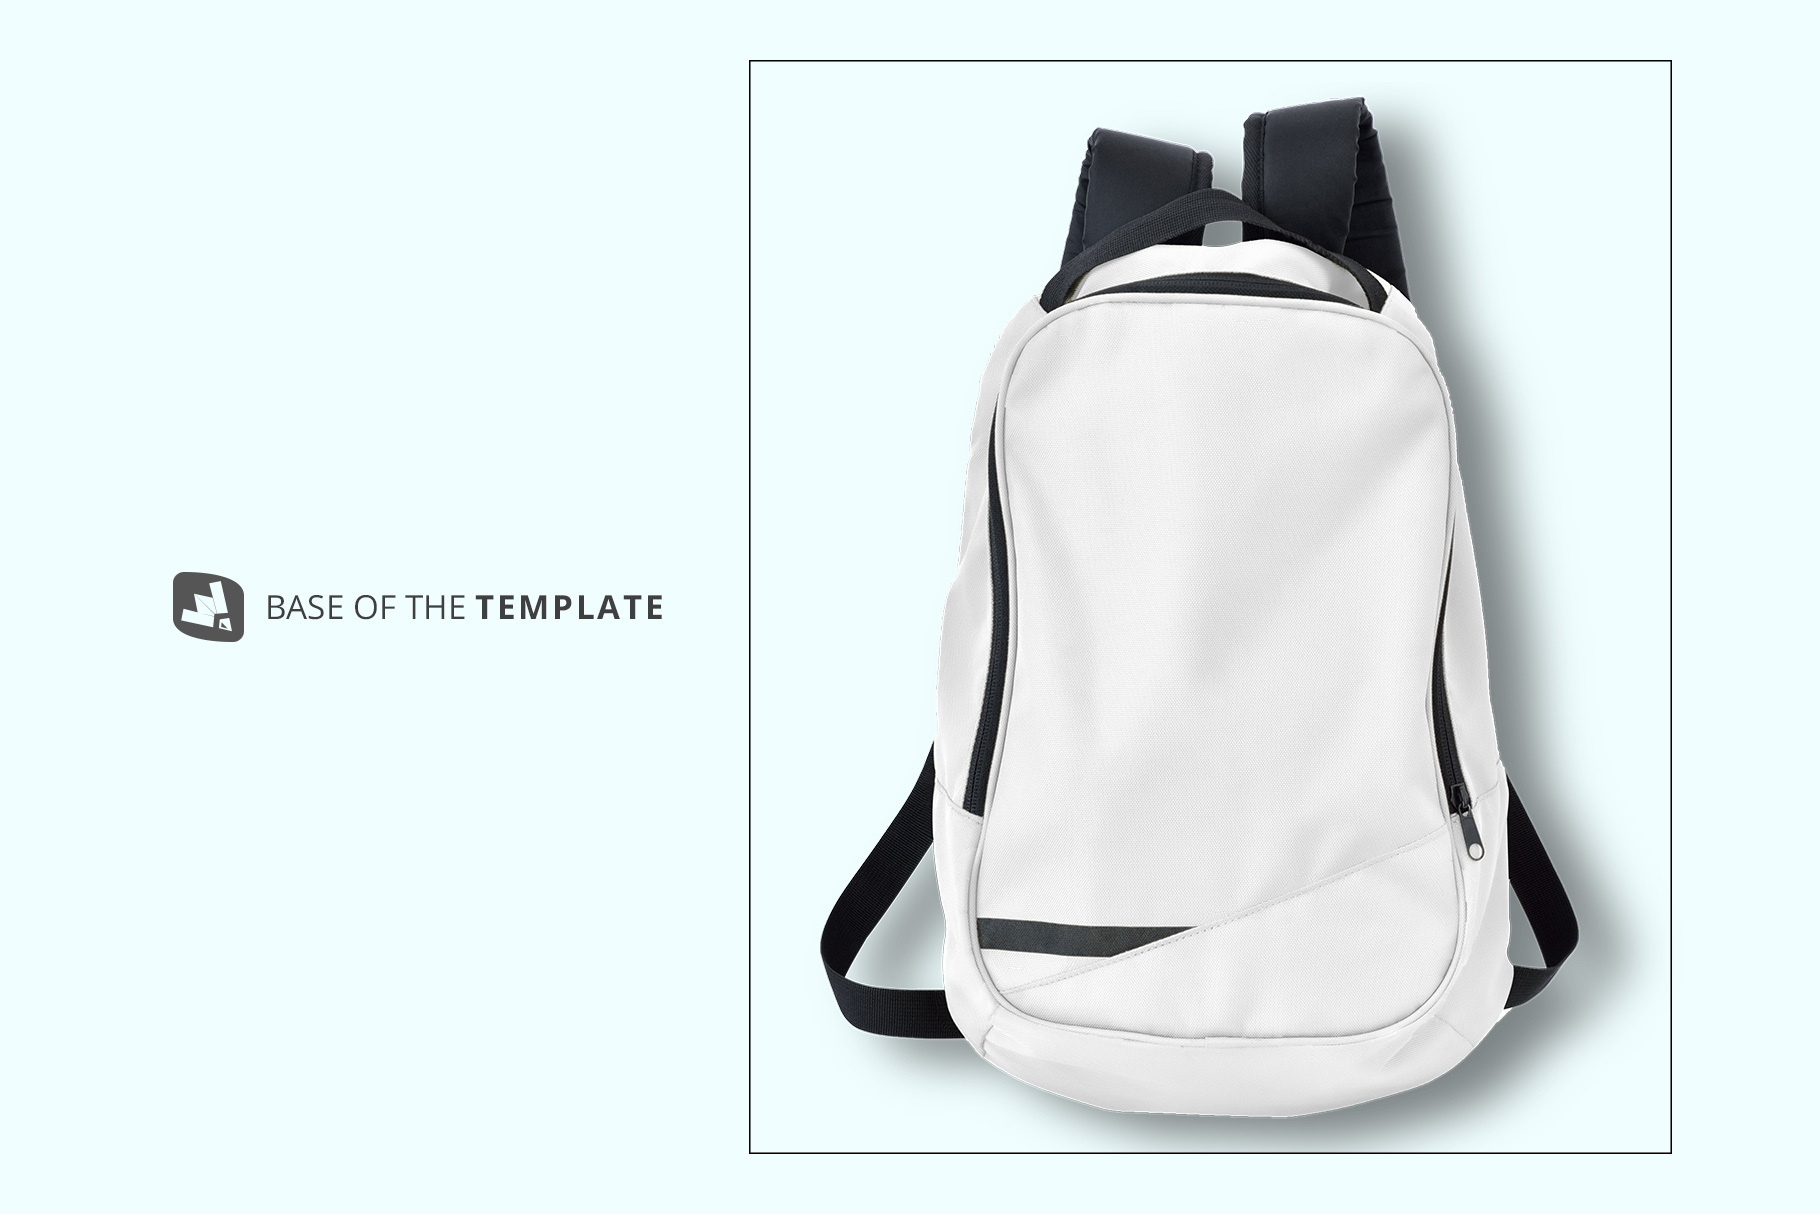 base image of the top view backpack mockup